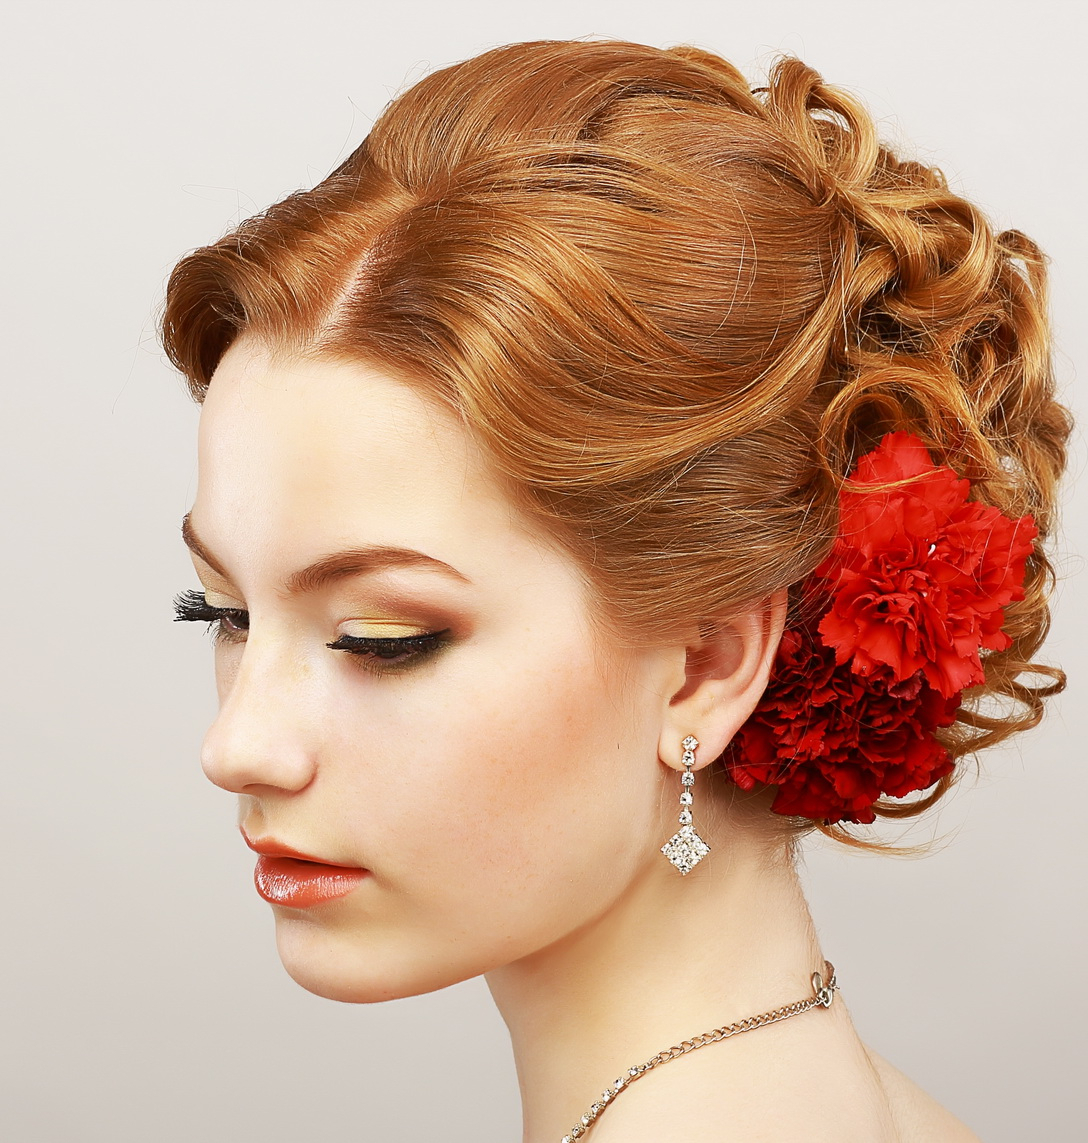 16 Easy Prom Hairstyles For Short And Medium Length Hair Regarding Hairstyles For Short Hair For Graduation (View 3 of 25)